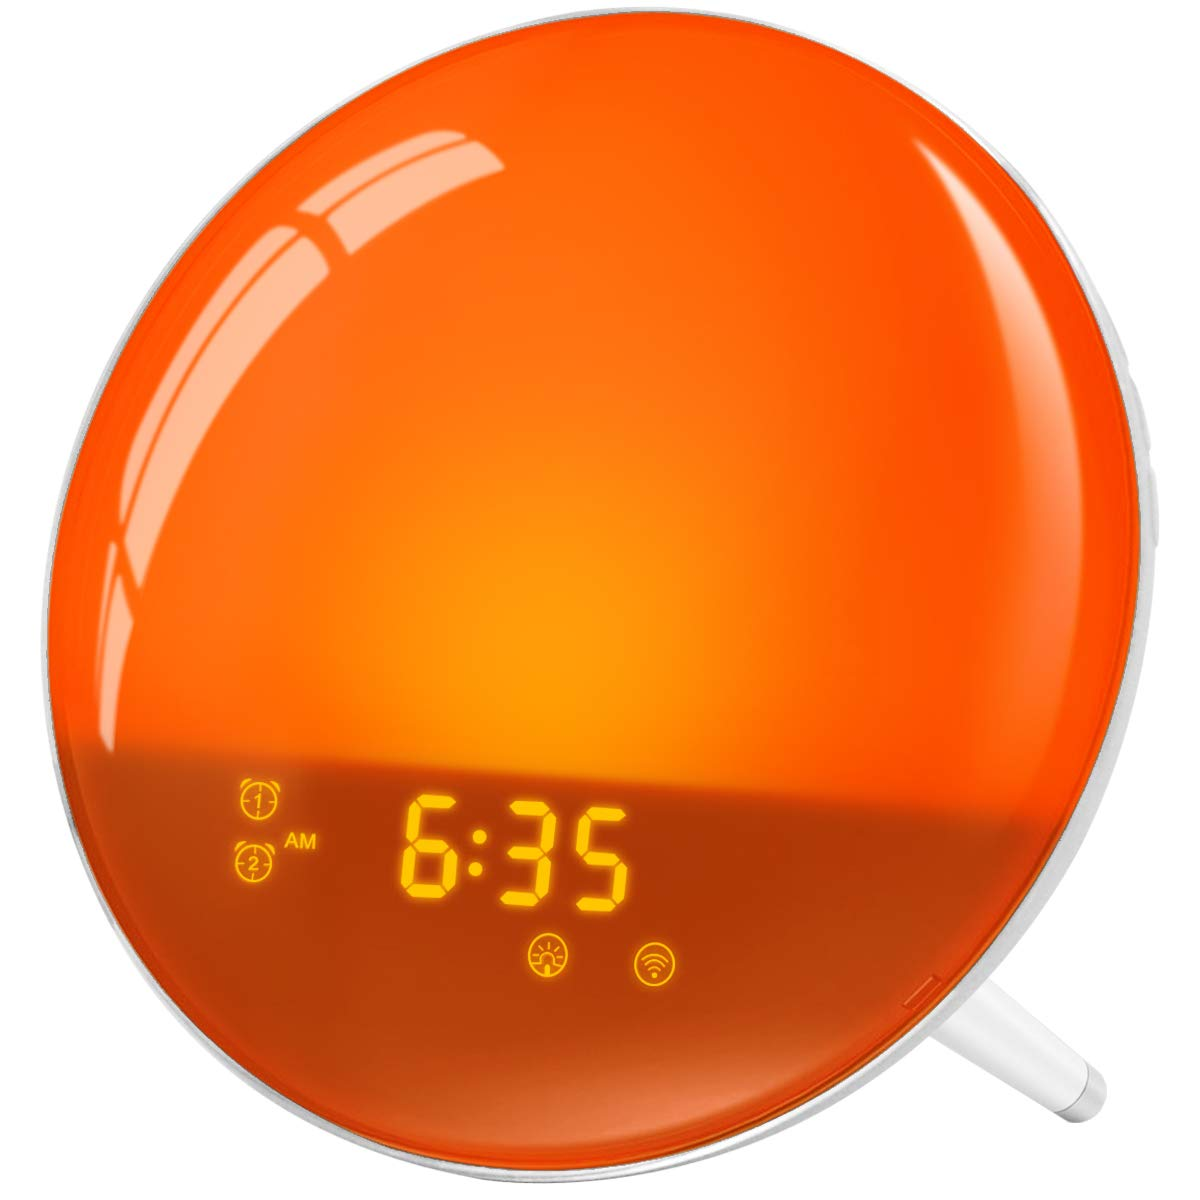 Best Wake Up Light Alarm Clocks For Daylight Savings